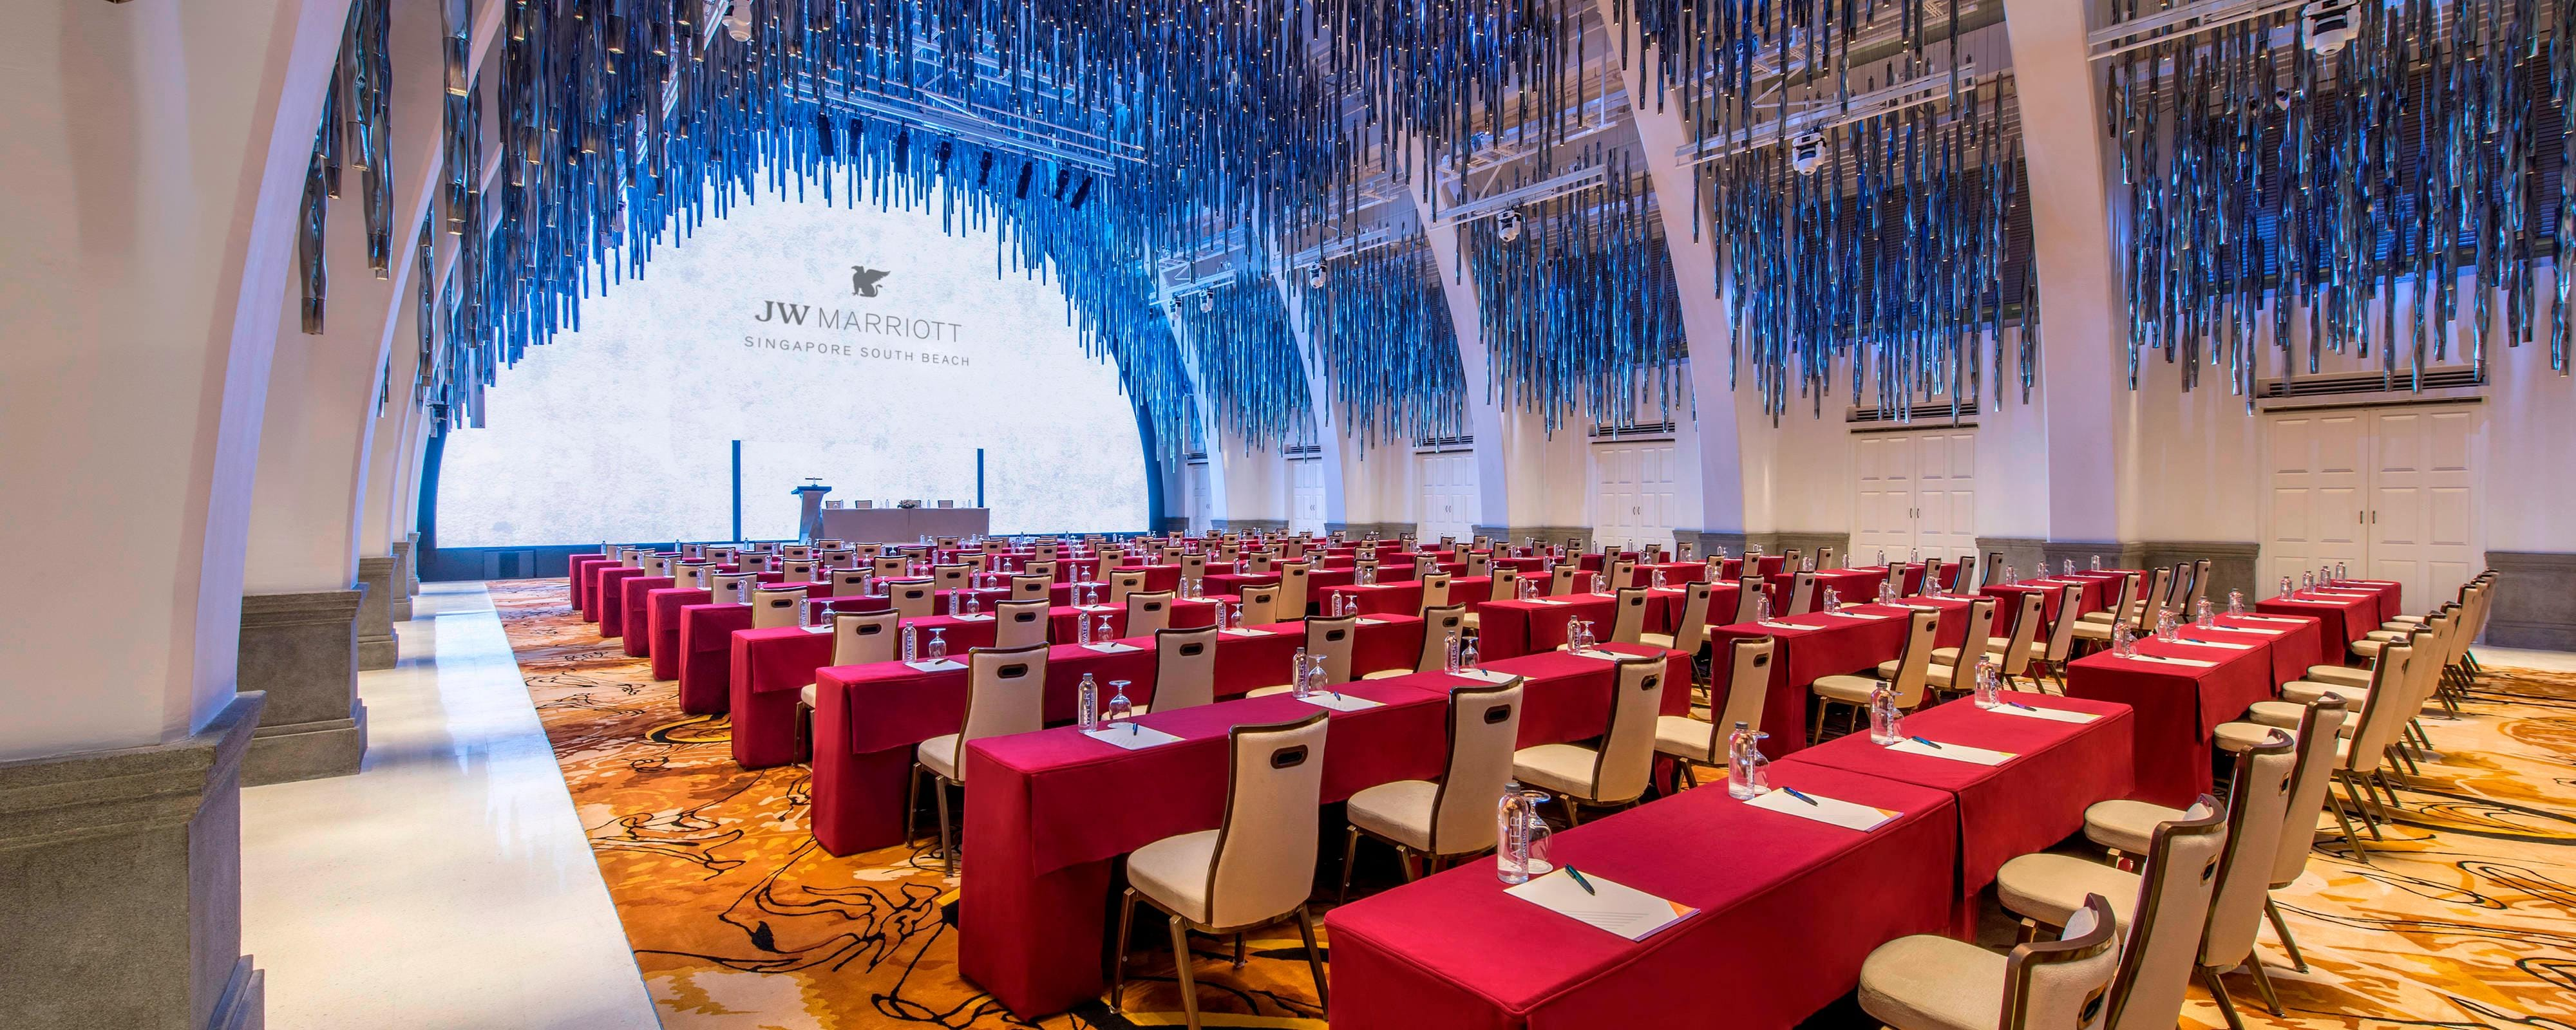 Singapore Convention Center Hotel - Meeting Rooms | JW